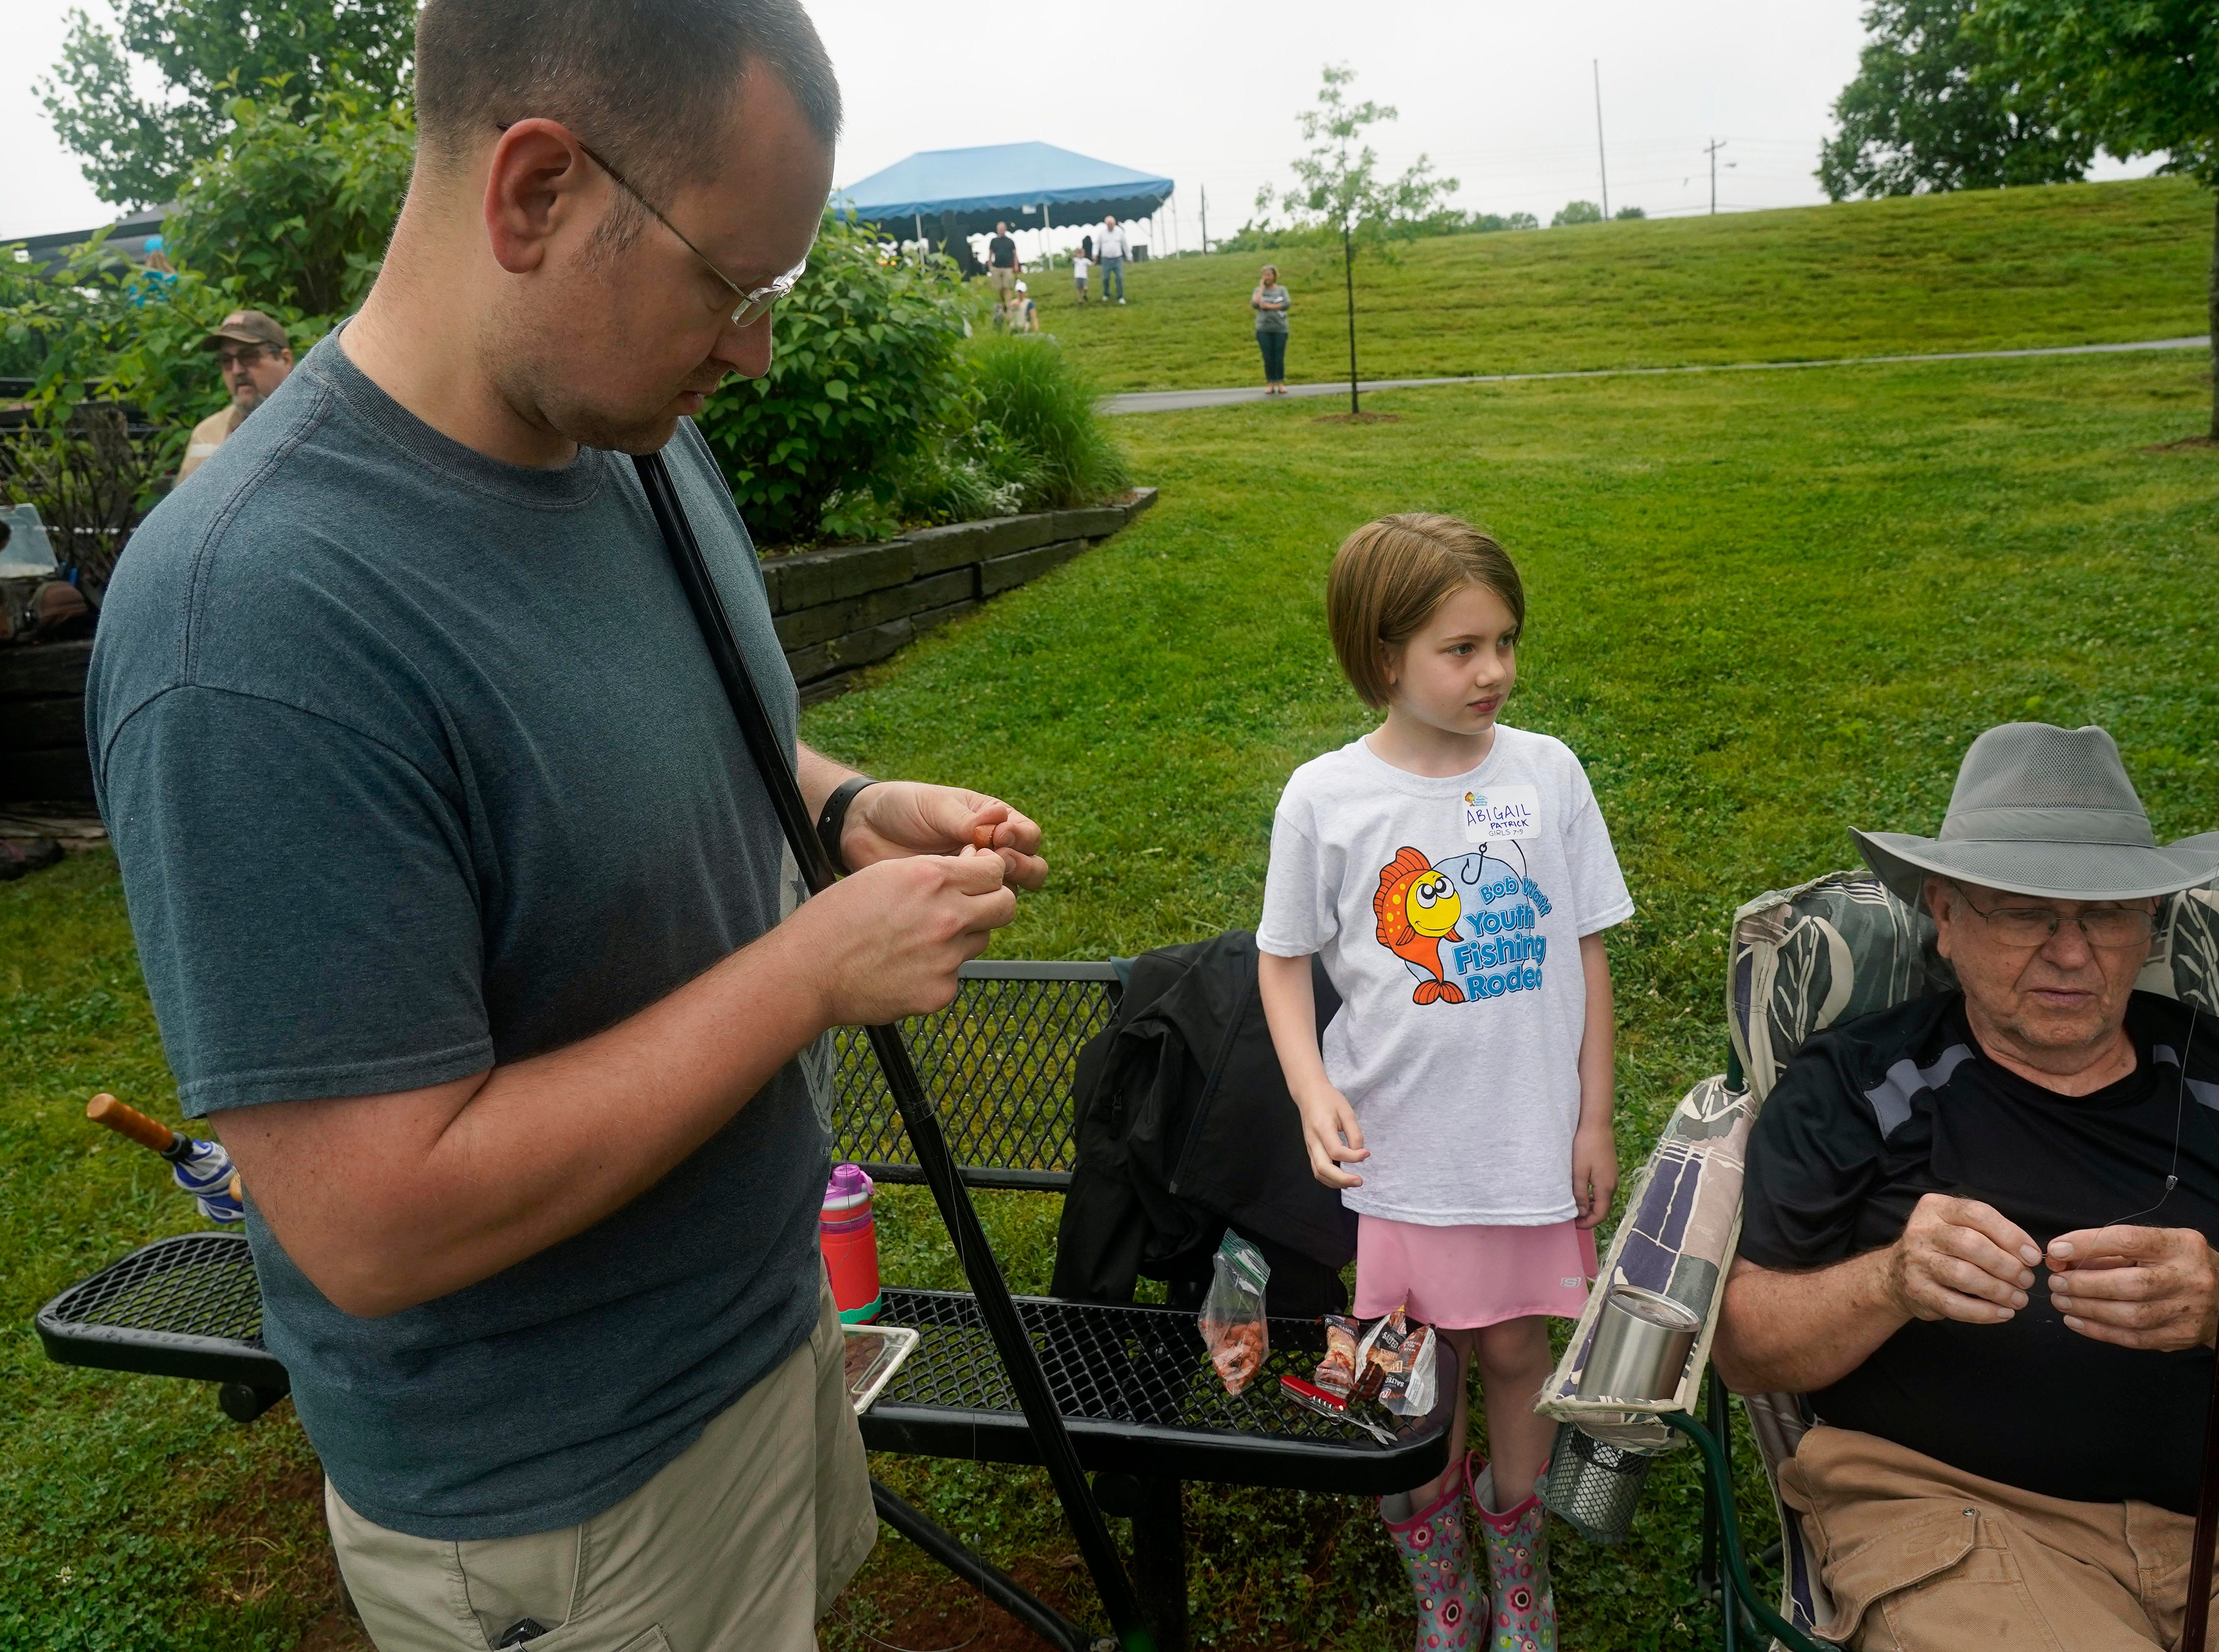 Ryan Patrick baits the hook for his daughter Abigail during the 35th Annual Bob Watt Youth Fishing Rodeo Saturday, May. 11, 2019 at Anchor Park on Turkey Creek Road.